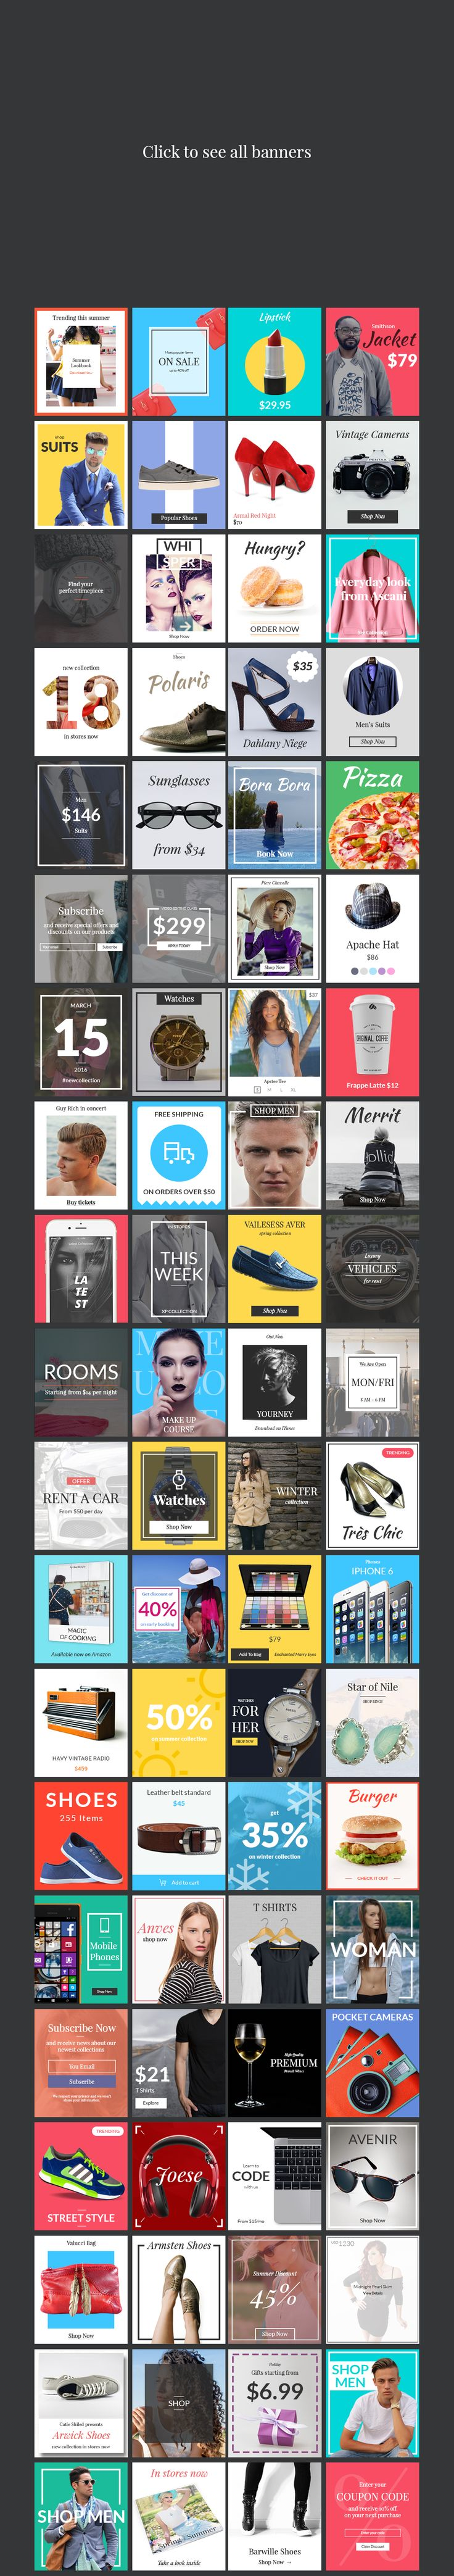 80 Banners - Shop Edition by Web Donut on @creativemarket